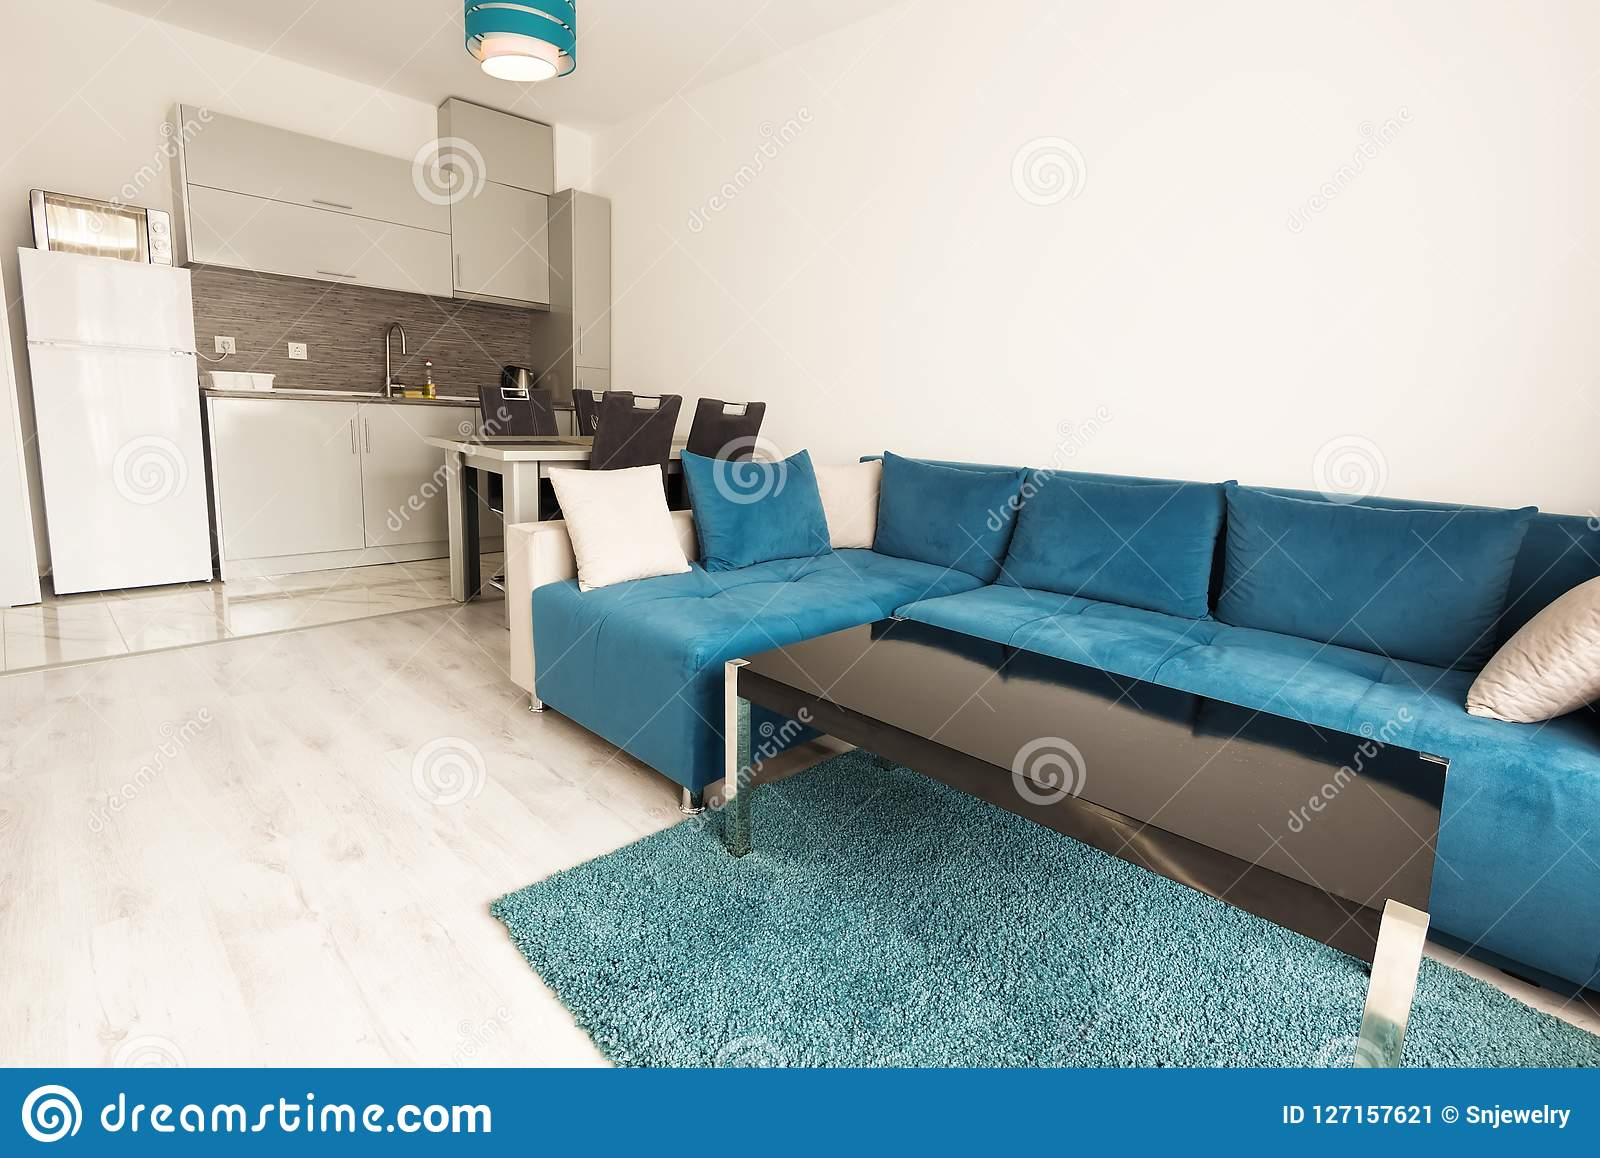 Modern Bright And Cozy Living Room Interior Design With Sofa